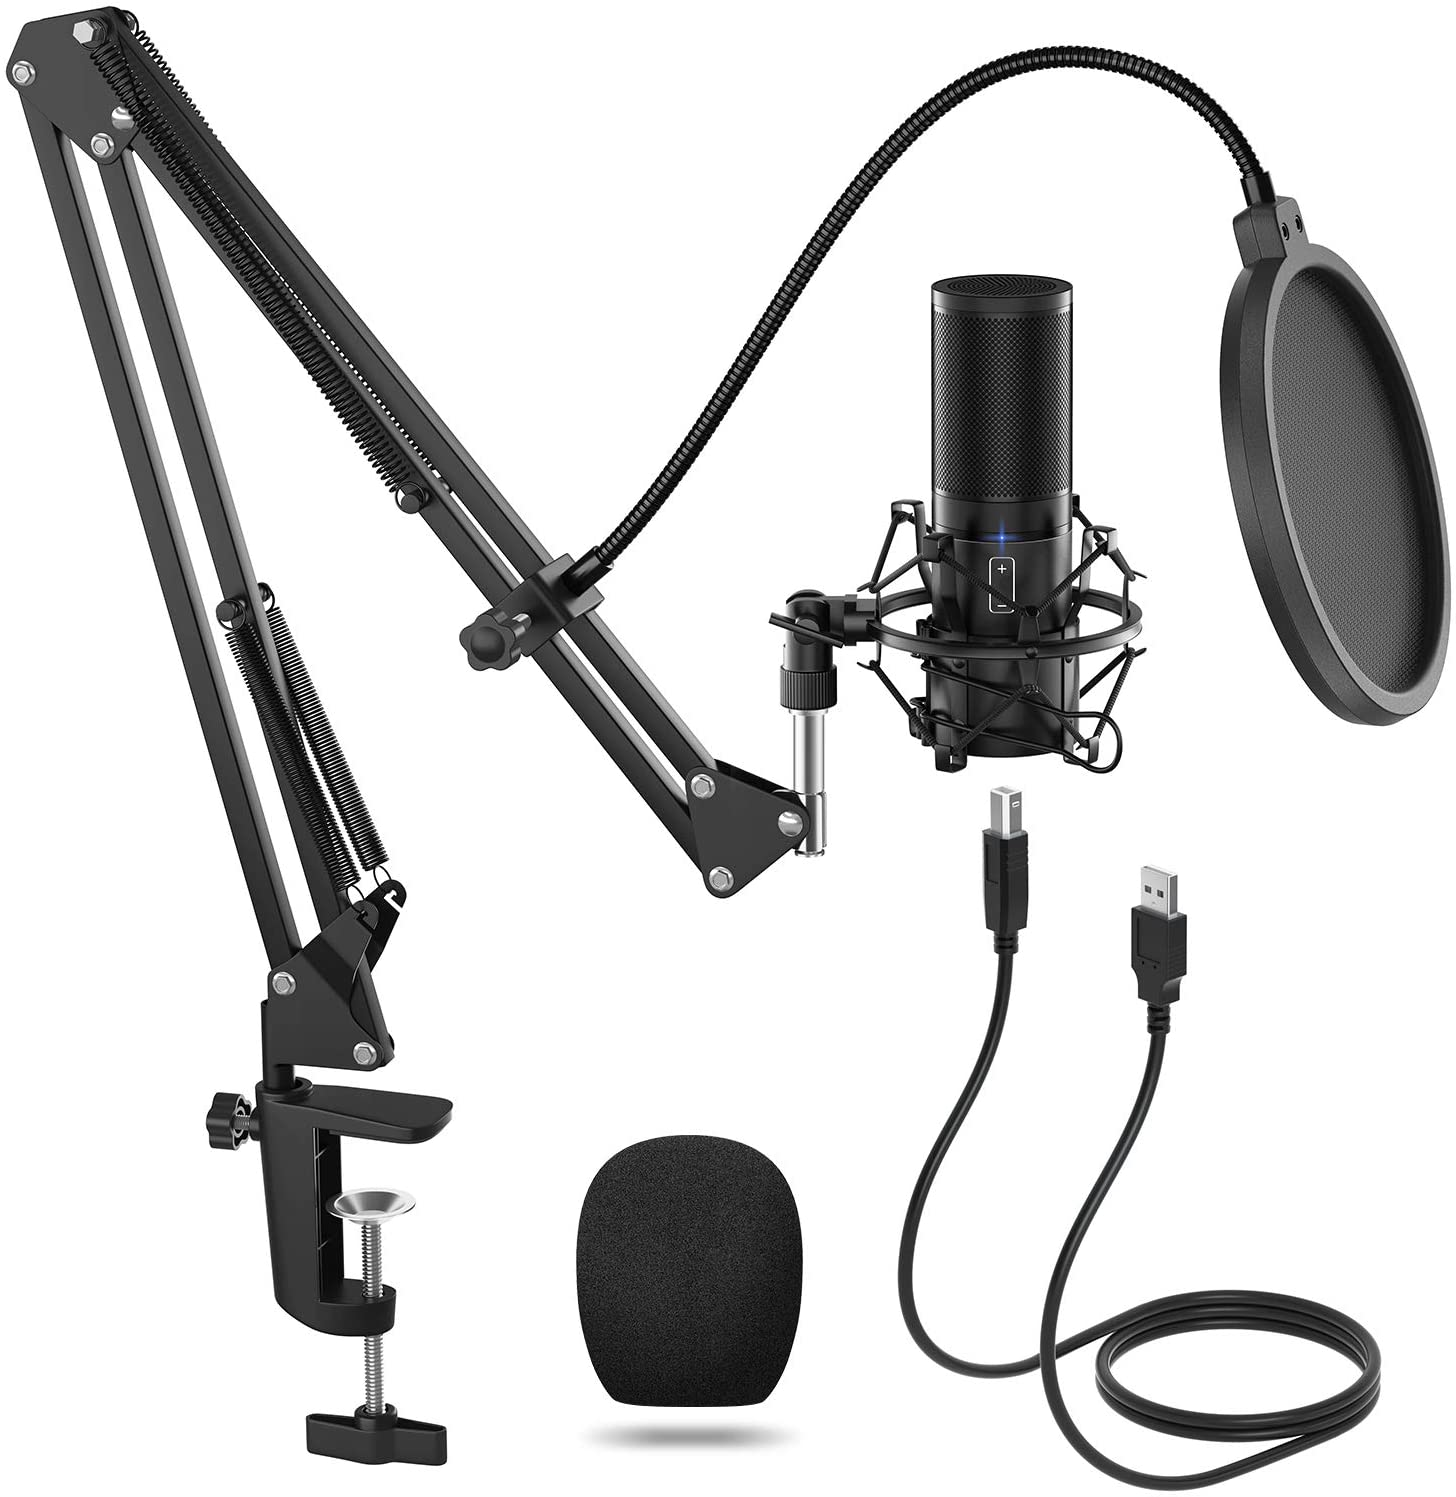 7108XS4Kv4L. AC SL1500 Best Streaming Mic Under 100$ - Top 8 Products ([year])